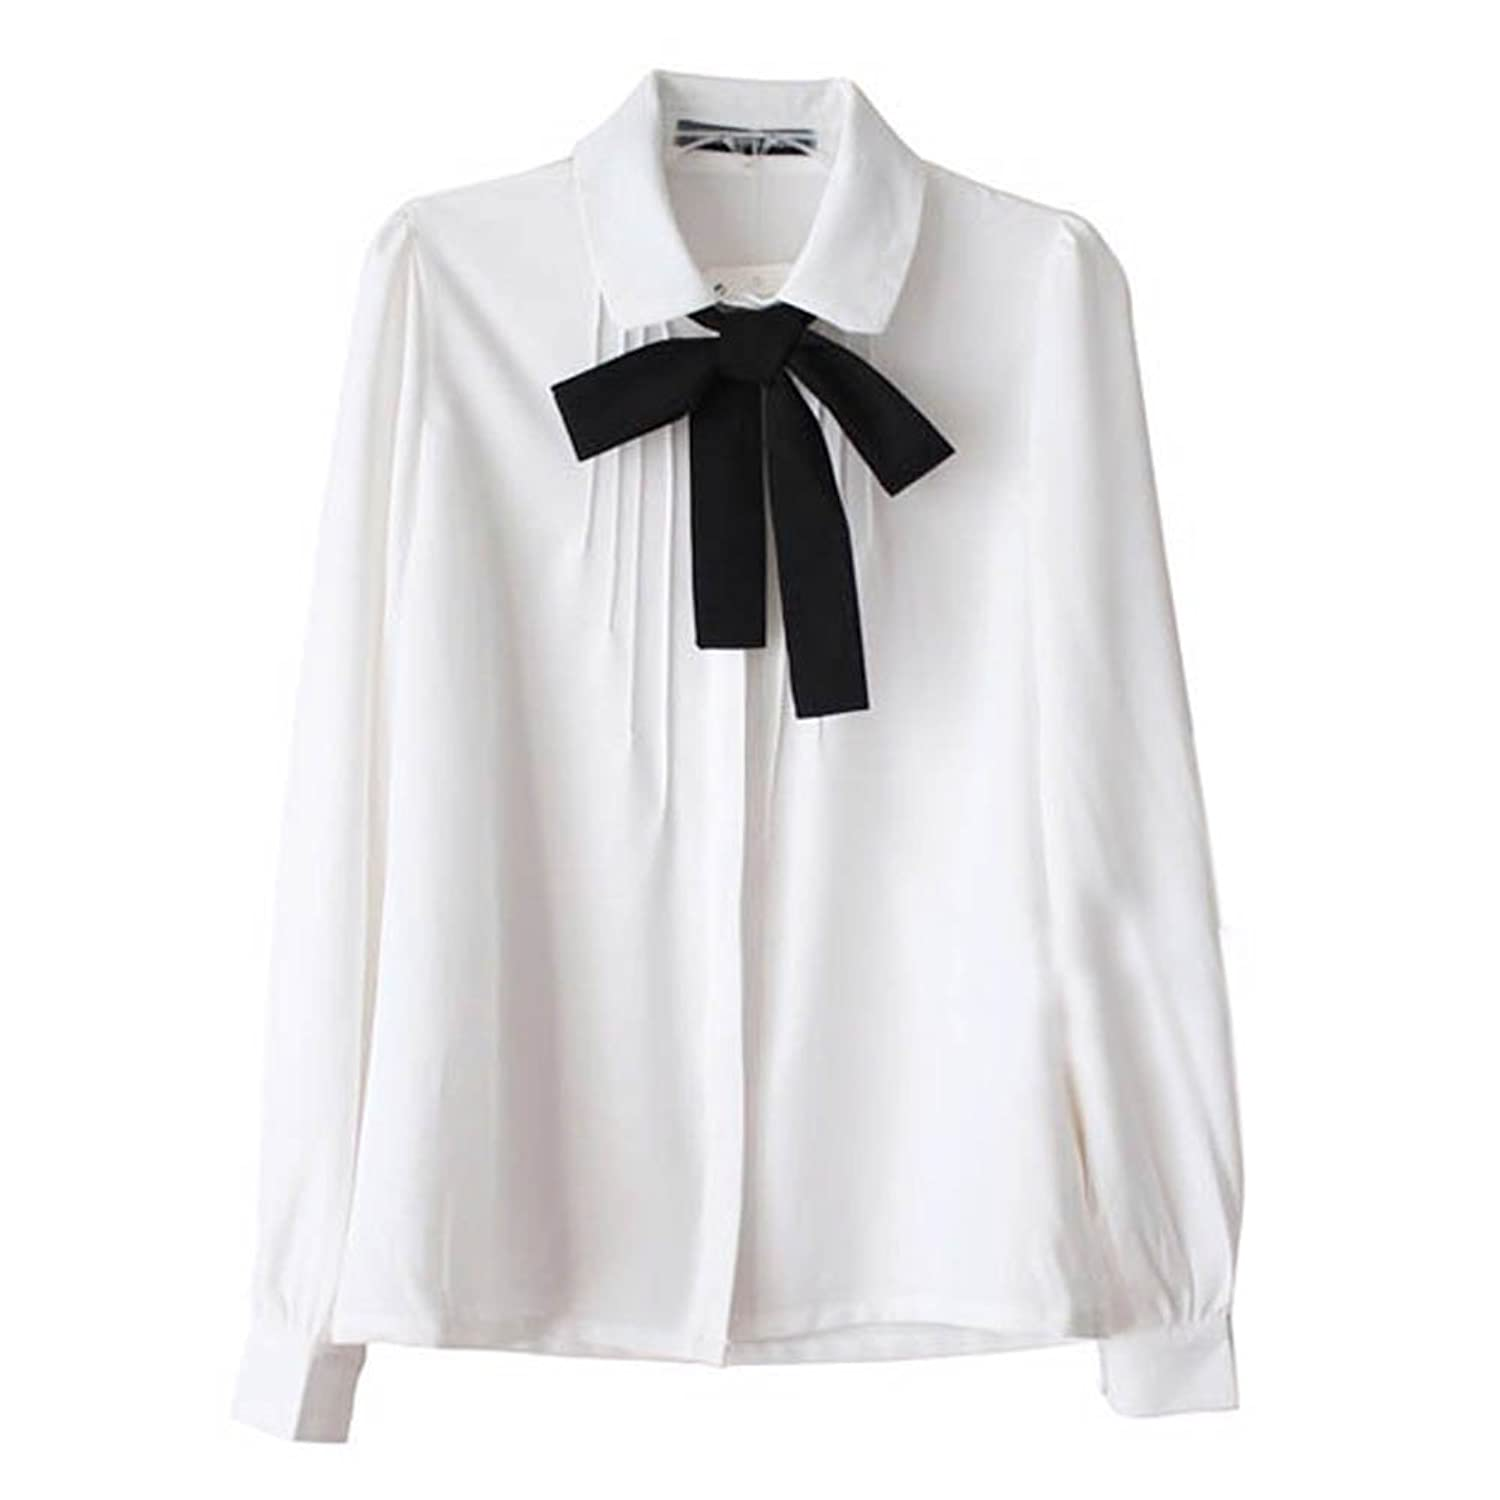 Cottagecore Clothing, Soft Aesthetic Etosell Lady Bowknot Baby Peter Pan Collar Shirt Womens Long Sleeve OL Button-Down Shirts White Blouses $13.99 AT vintagedancer.com